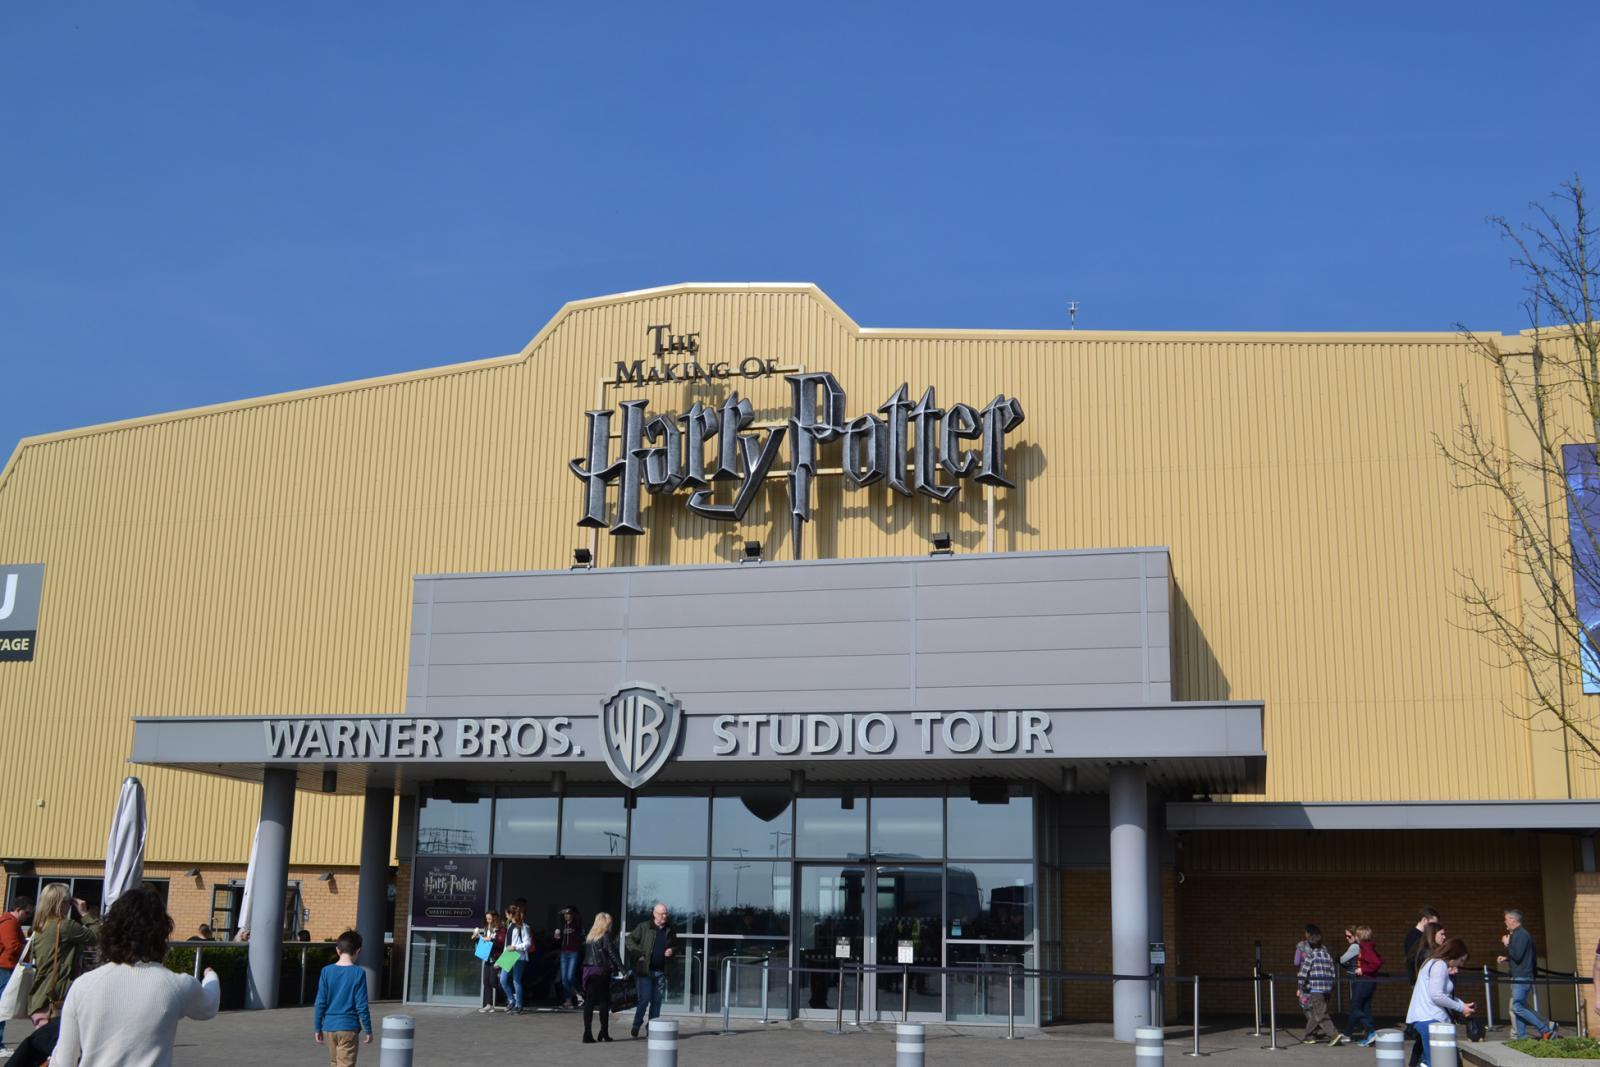 Der Eingang der Harry Potter Warner Bros. Studio Tour